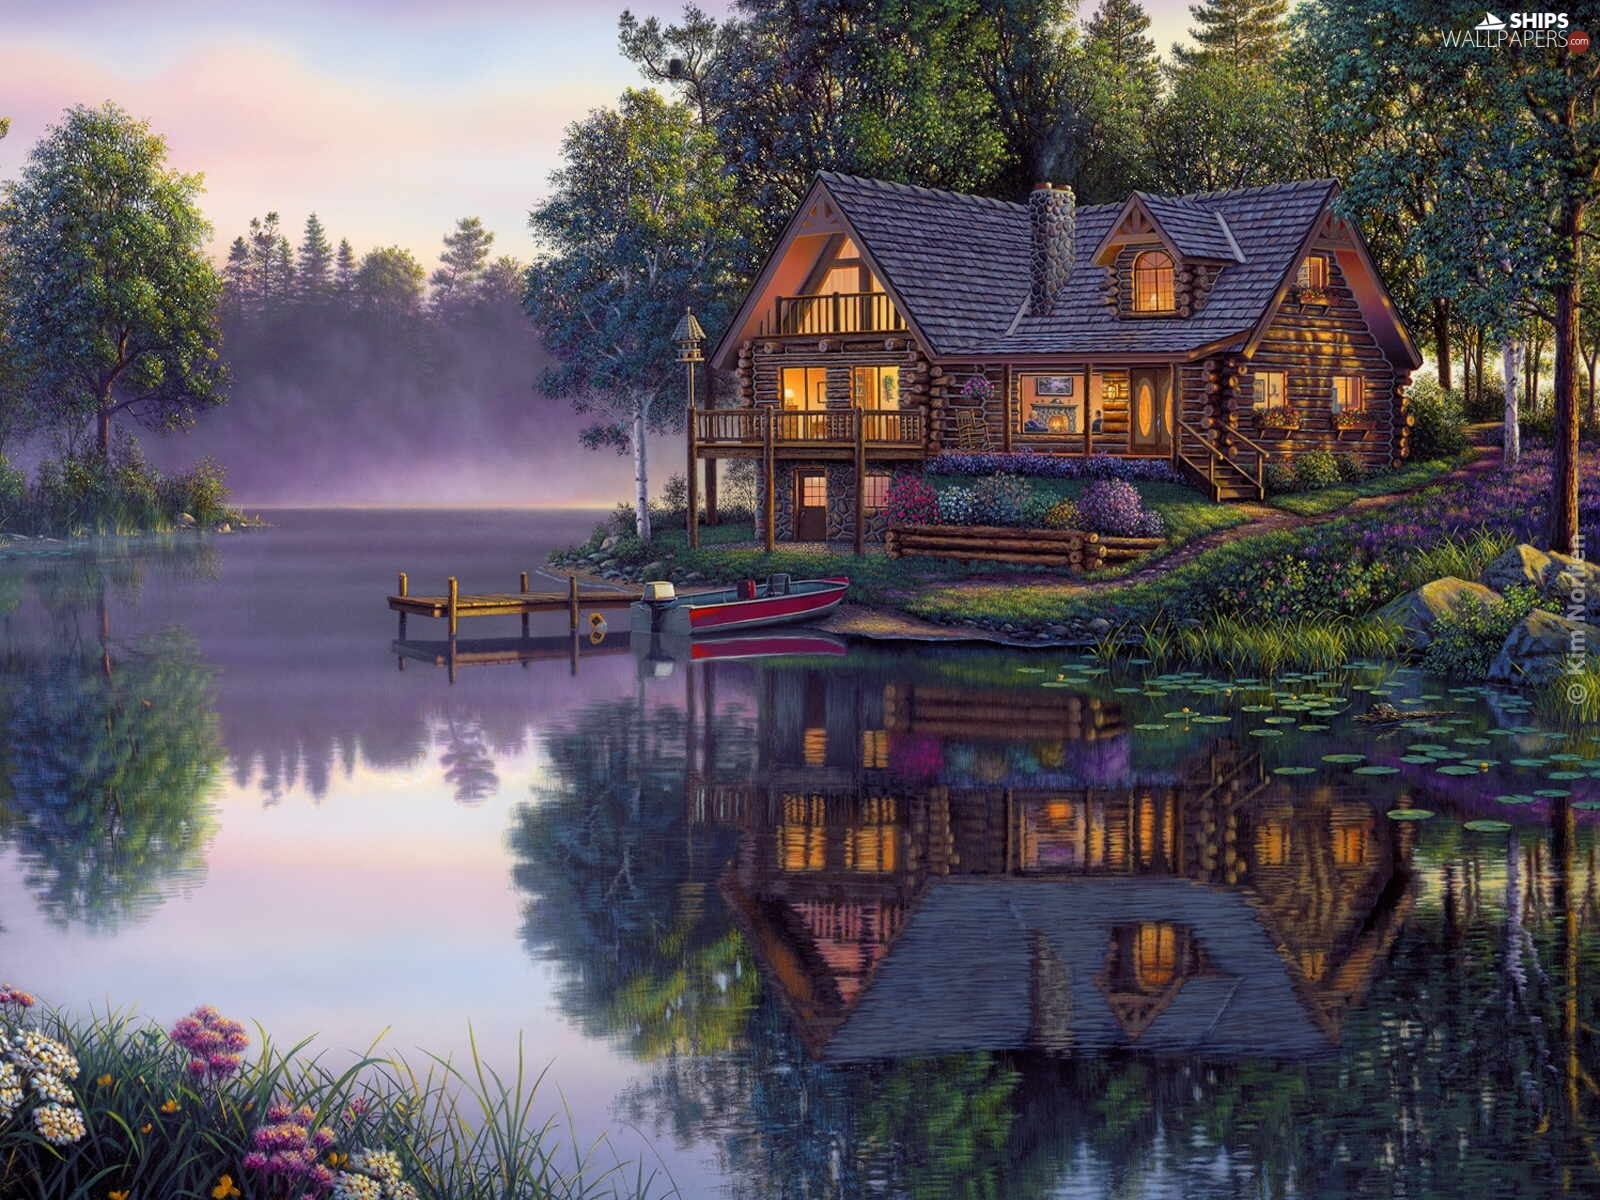 reflection, Mirror, lake, Boat, house